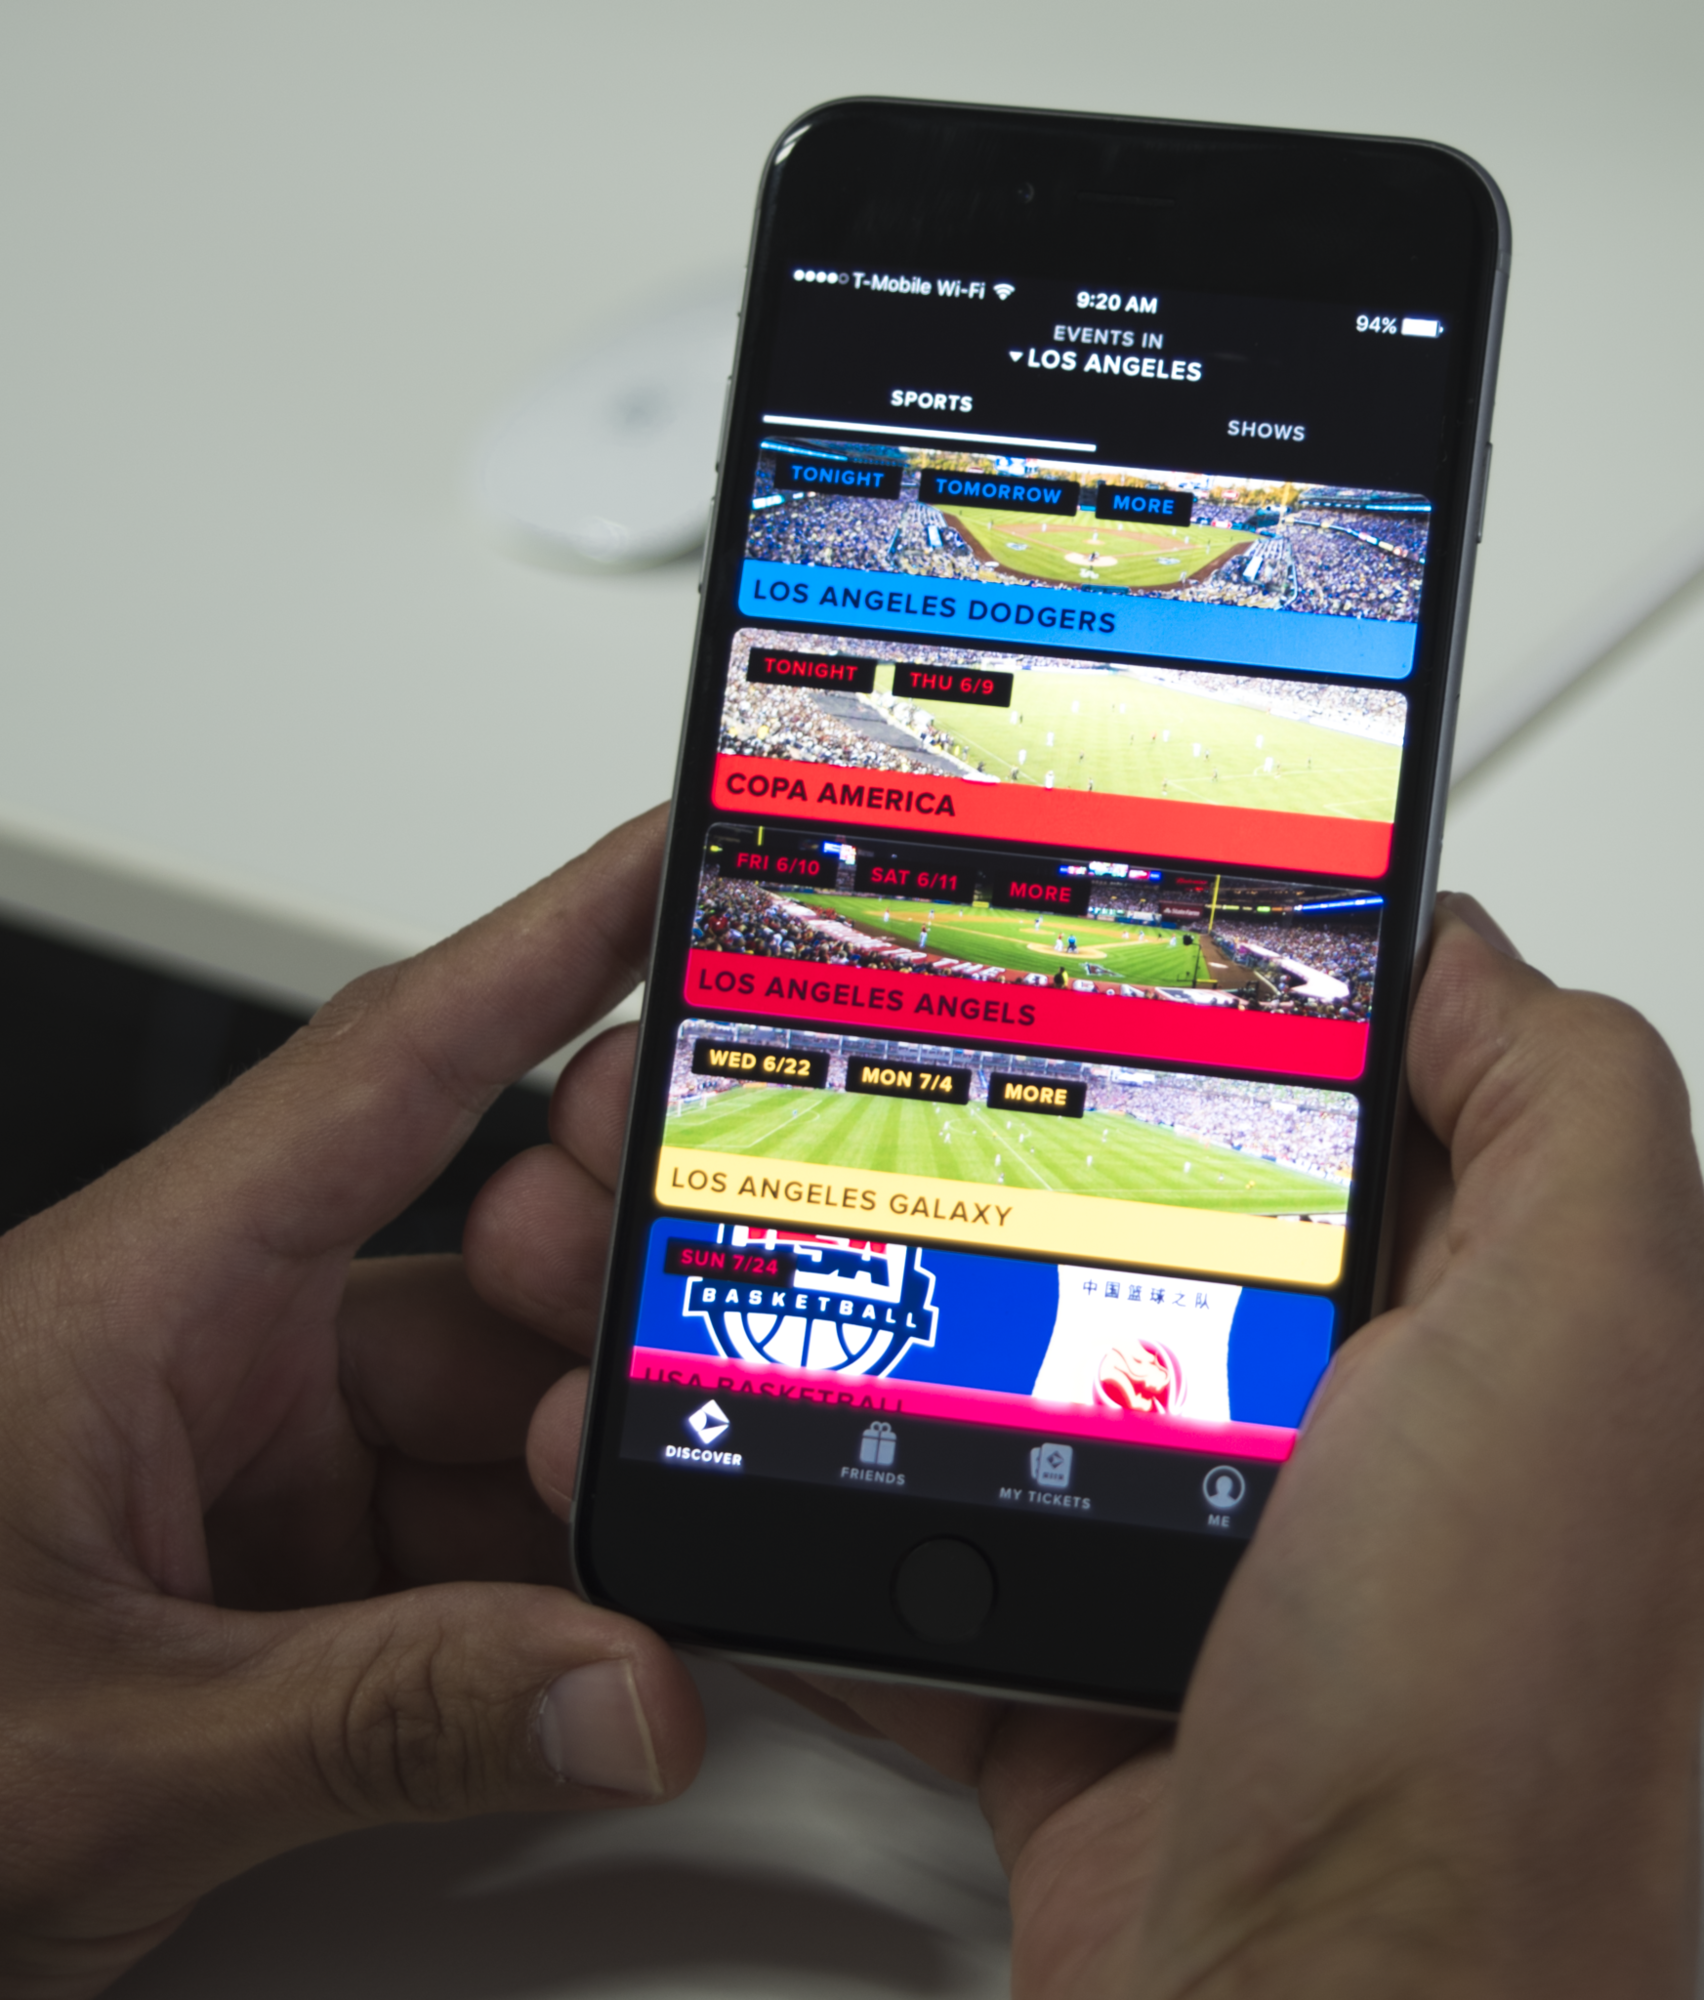 Gametime provides paperless ticketing for sports games and concerts.